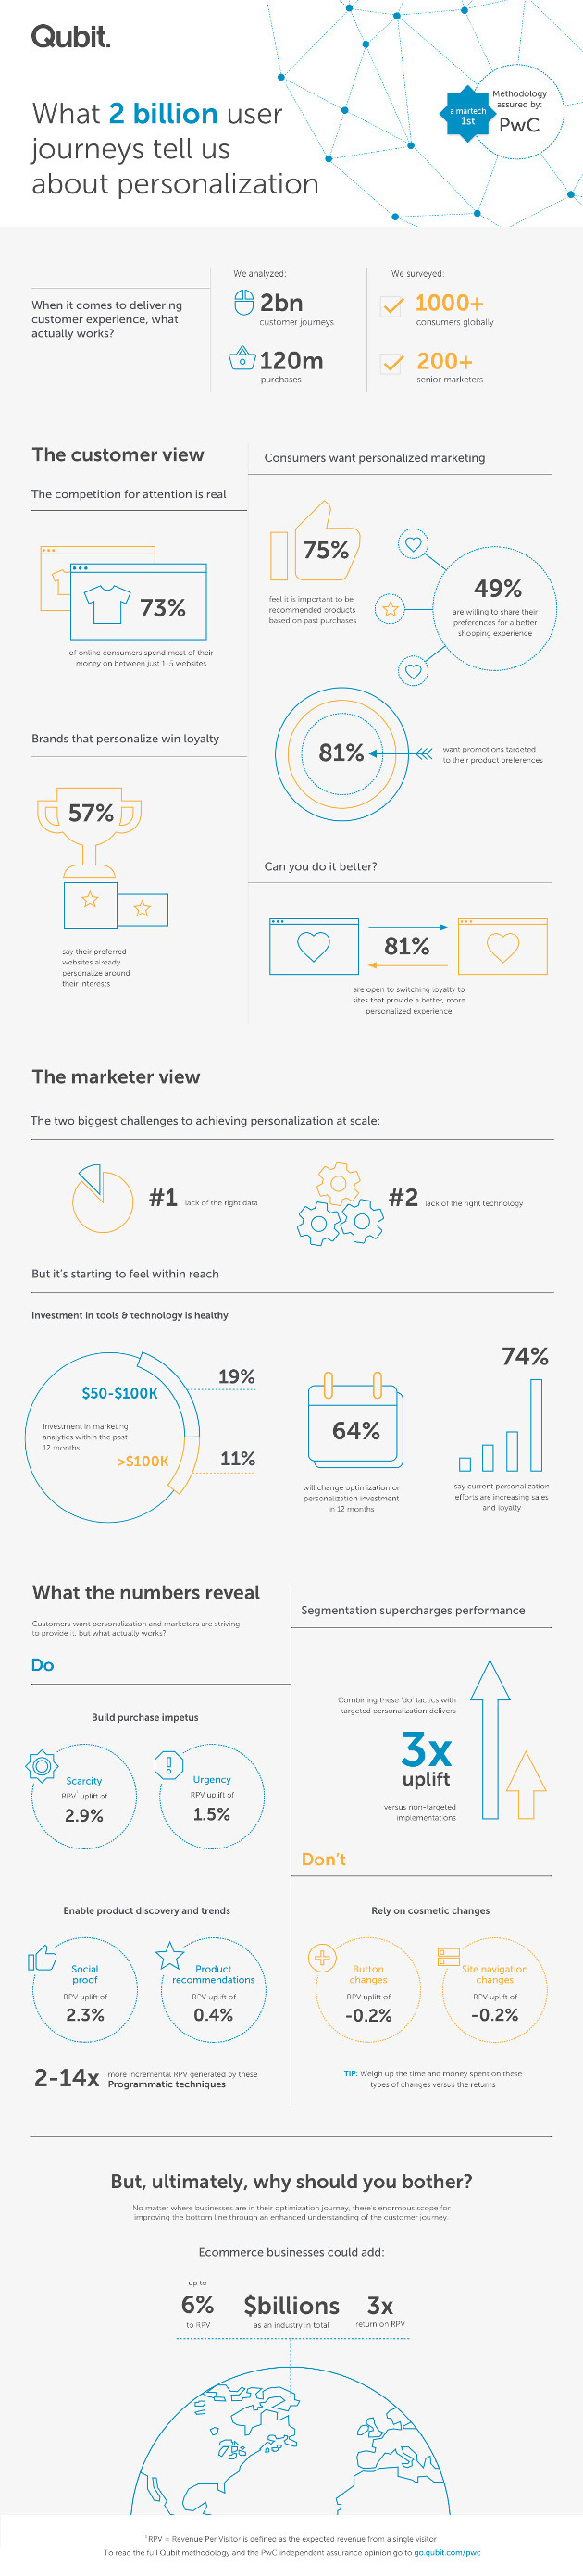 Users Personalization Journey of the 2 Billion [Infographic]